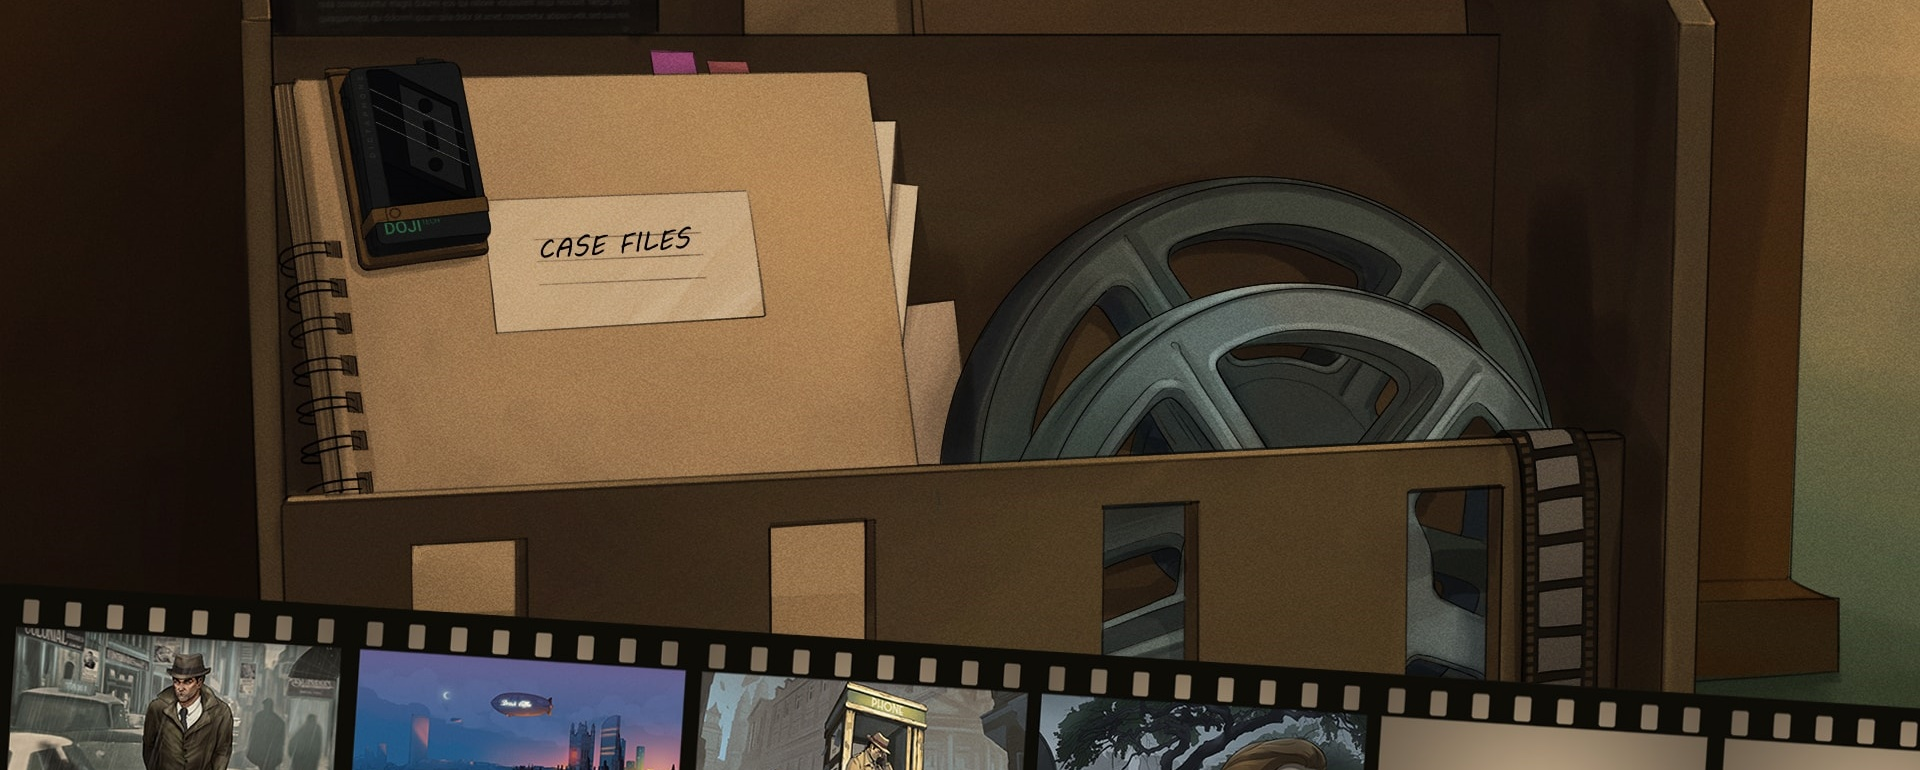 """A screenshot of the Comic Bank UI. It shows a folder with text """"case files"""" on it, it has an attached casette with """"doji"""" written on it, and a film spool, below there's a number of scenes on a film reel to choose from."""